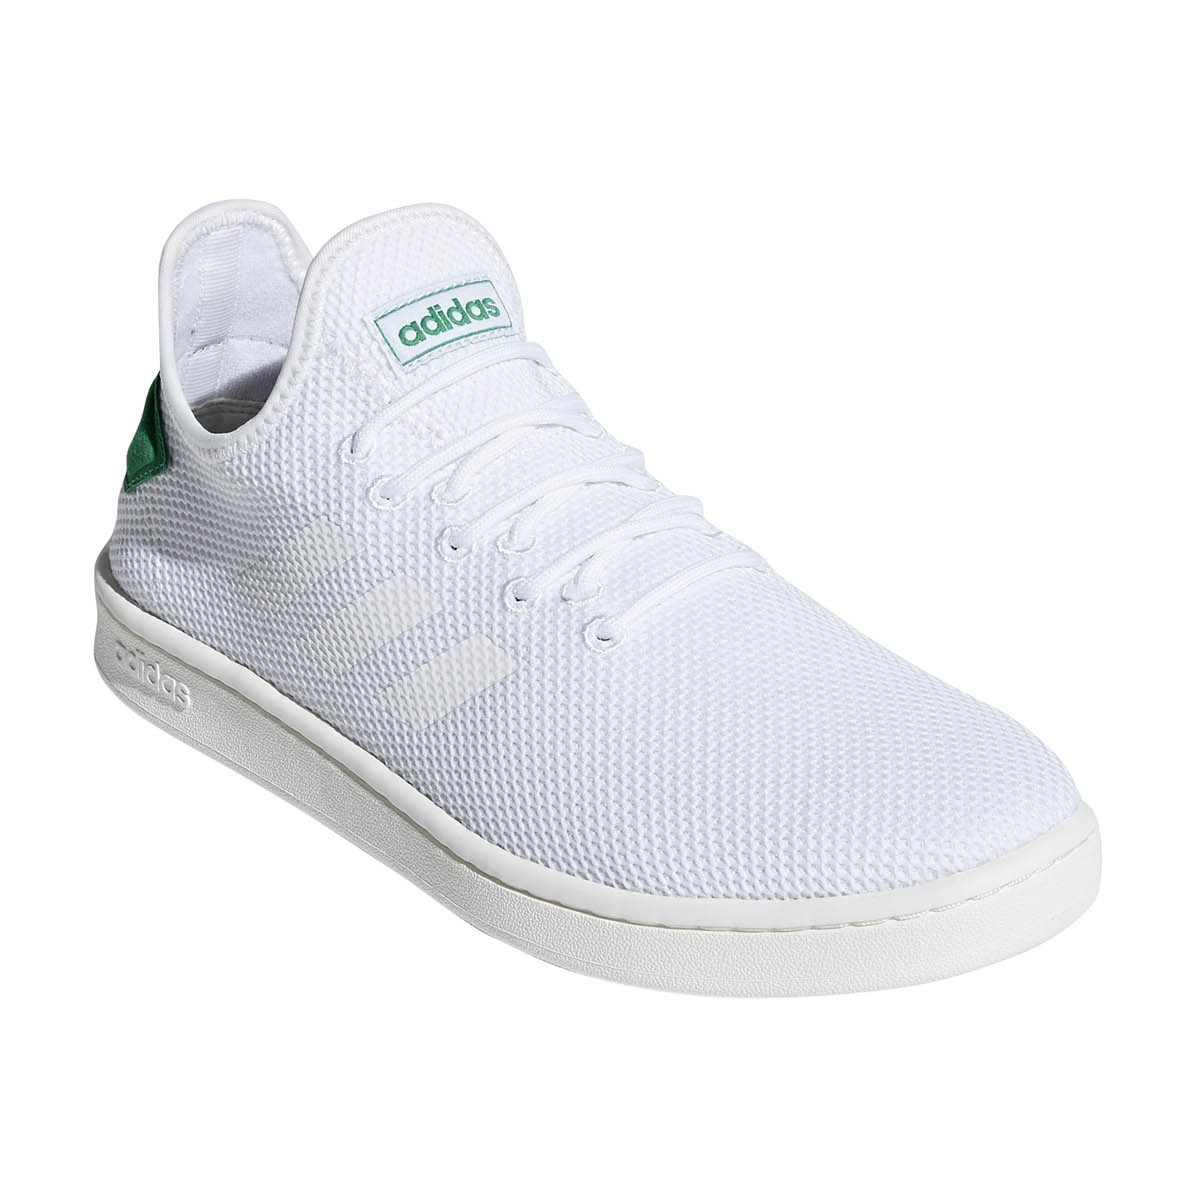 the latest c1f5b 2b659 Adidas Court Adapt - Mens Sneakers - Footwear White Green